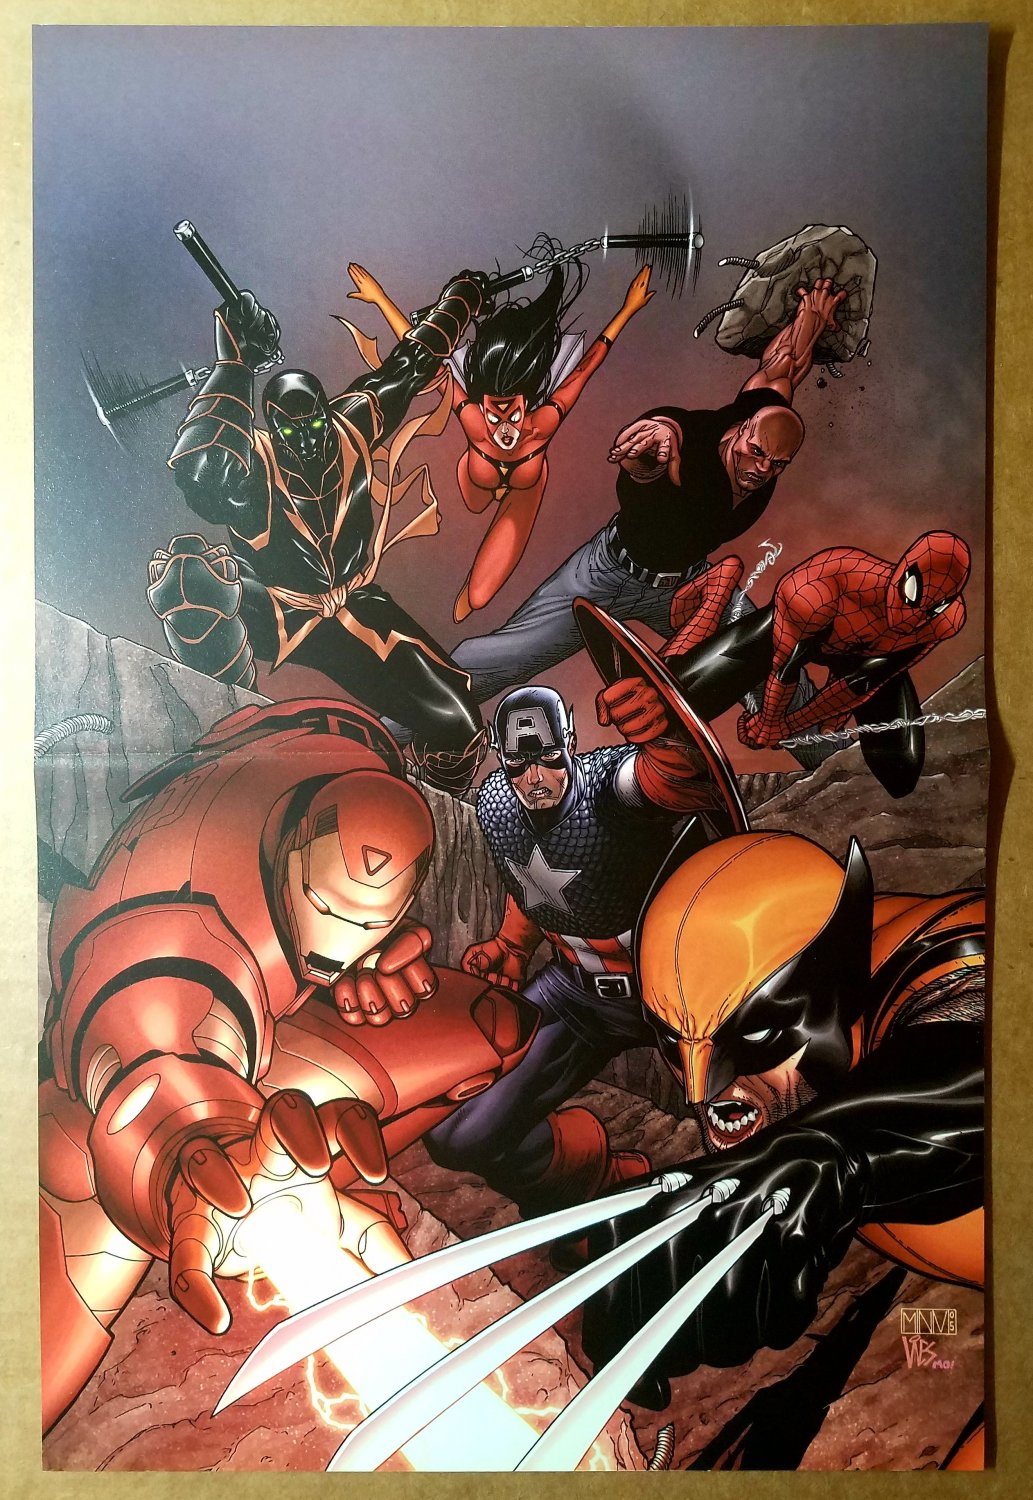 New Avengers Spiderman Iron Man Wolverine Marvel Comics Poster by Steve McNiven